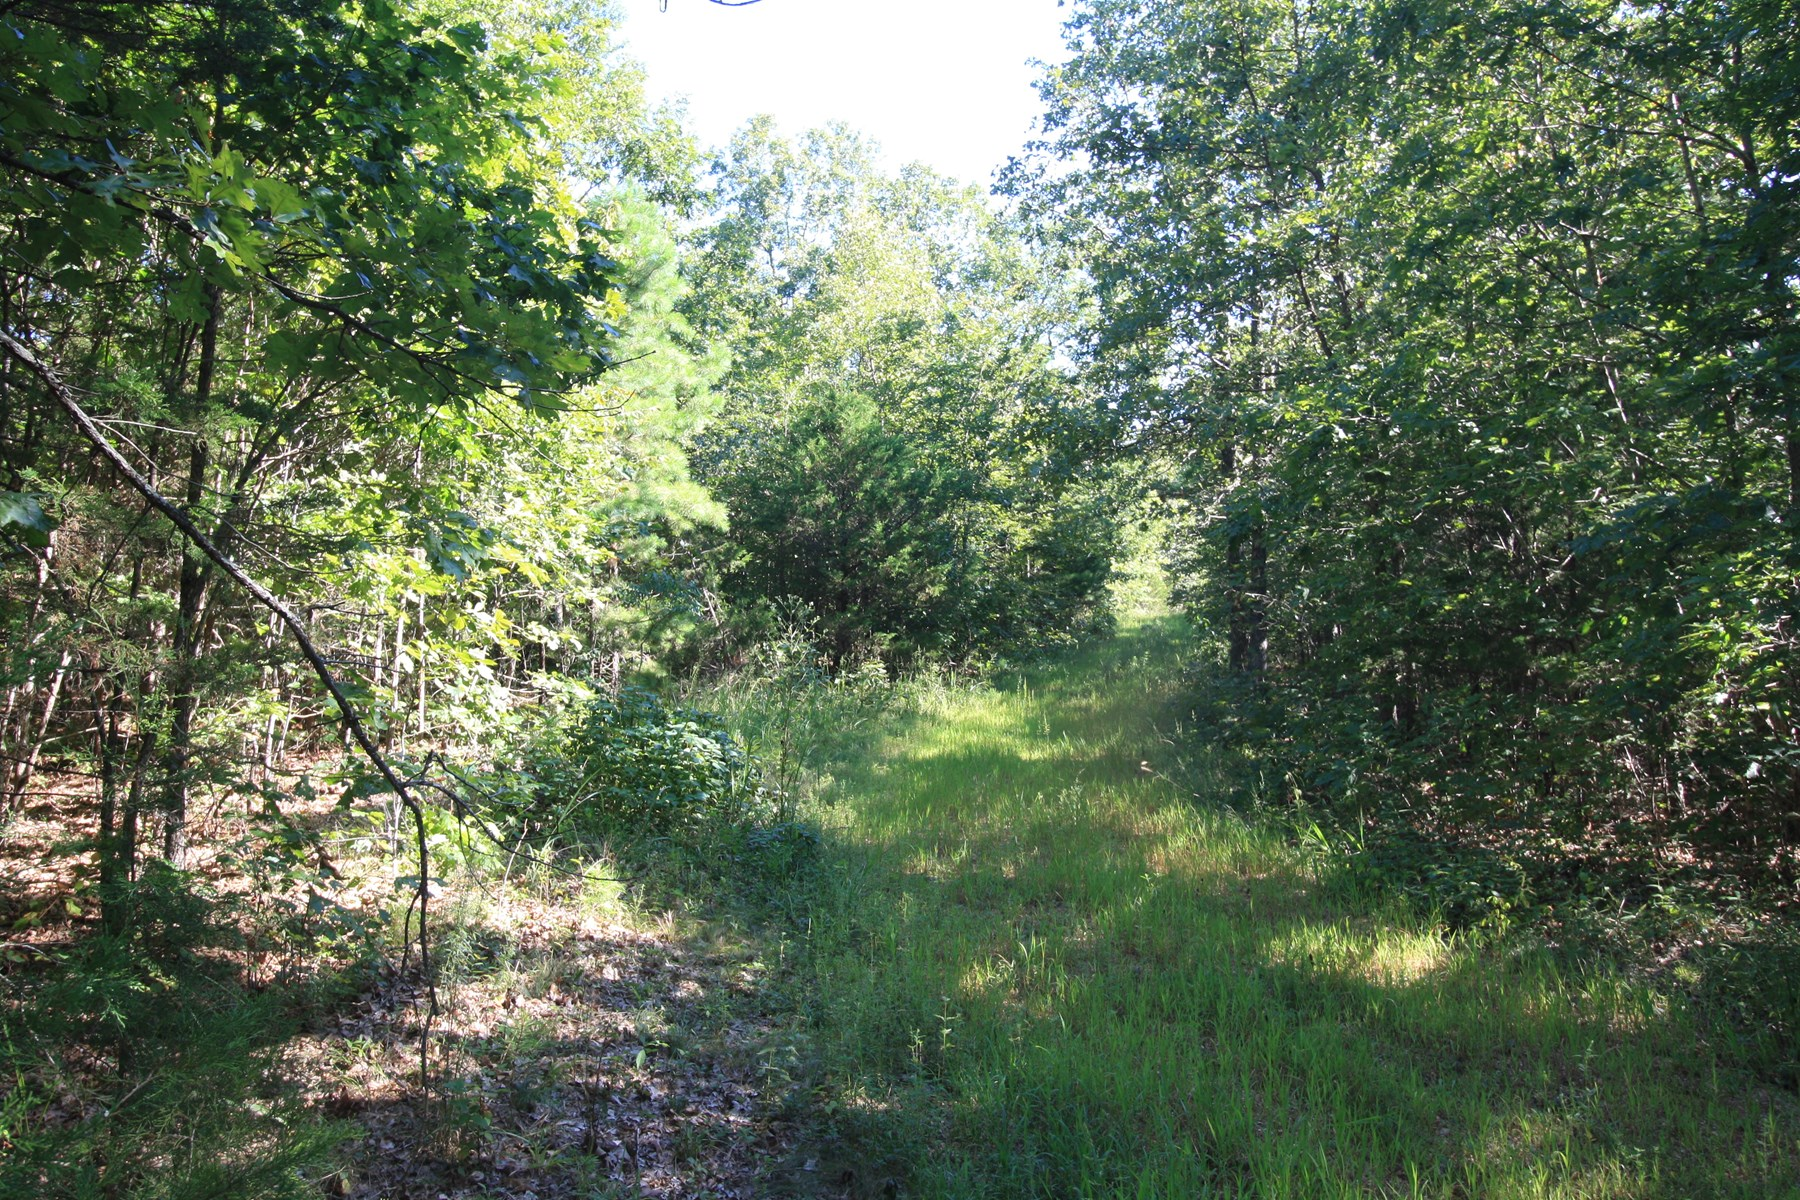 Wayne County Missouri Hunting Land for sale 240 acres